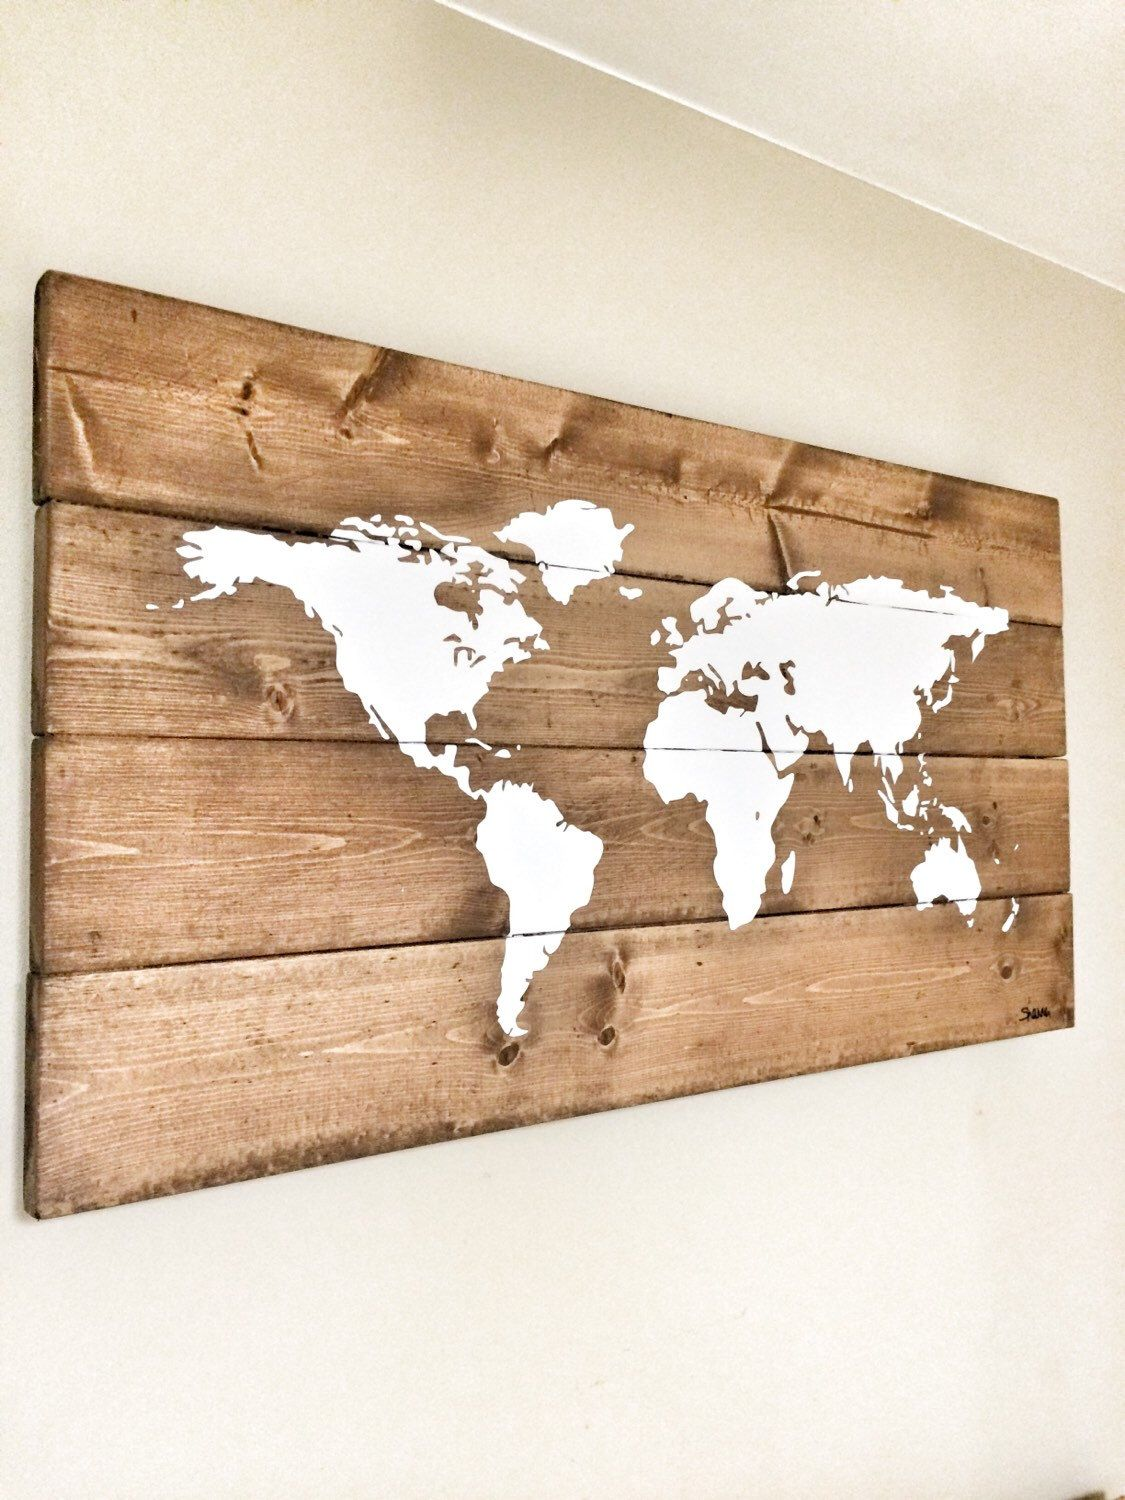 Rustic wood world map rustic decor farmhouse decor rustic nursery rustic wood world map rustic decor farmhouse decor rustic nursery decor wall gumiabroncs Image collections